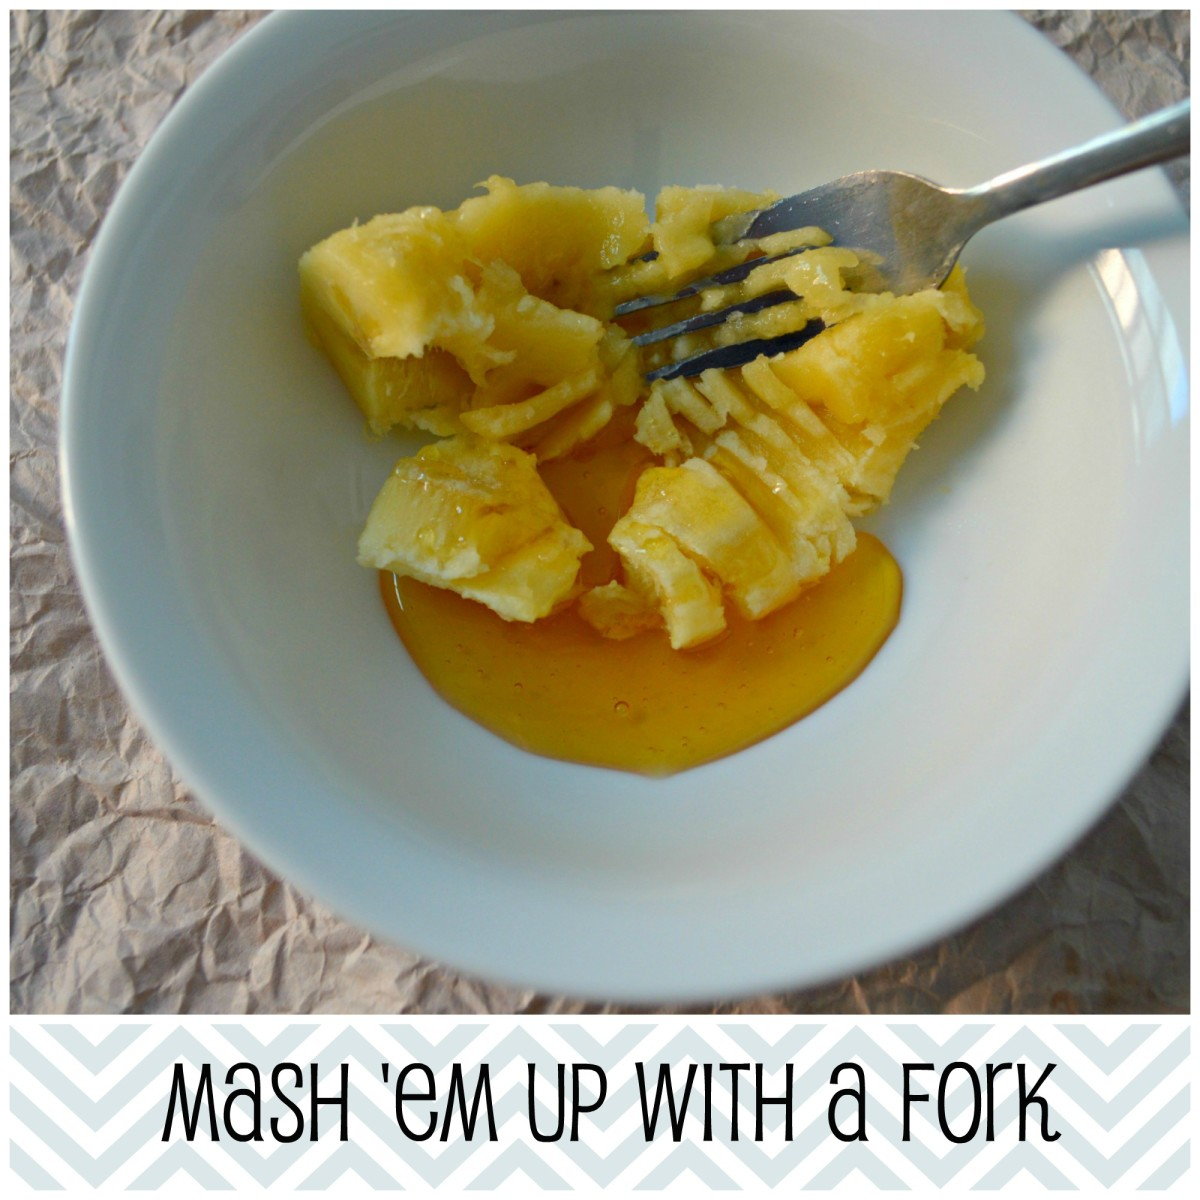 Just use a fork to mash it up, only takes 20 seconds. No need to use a blender here.